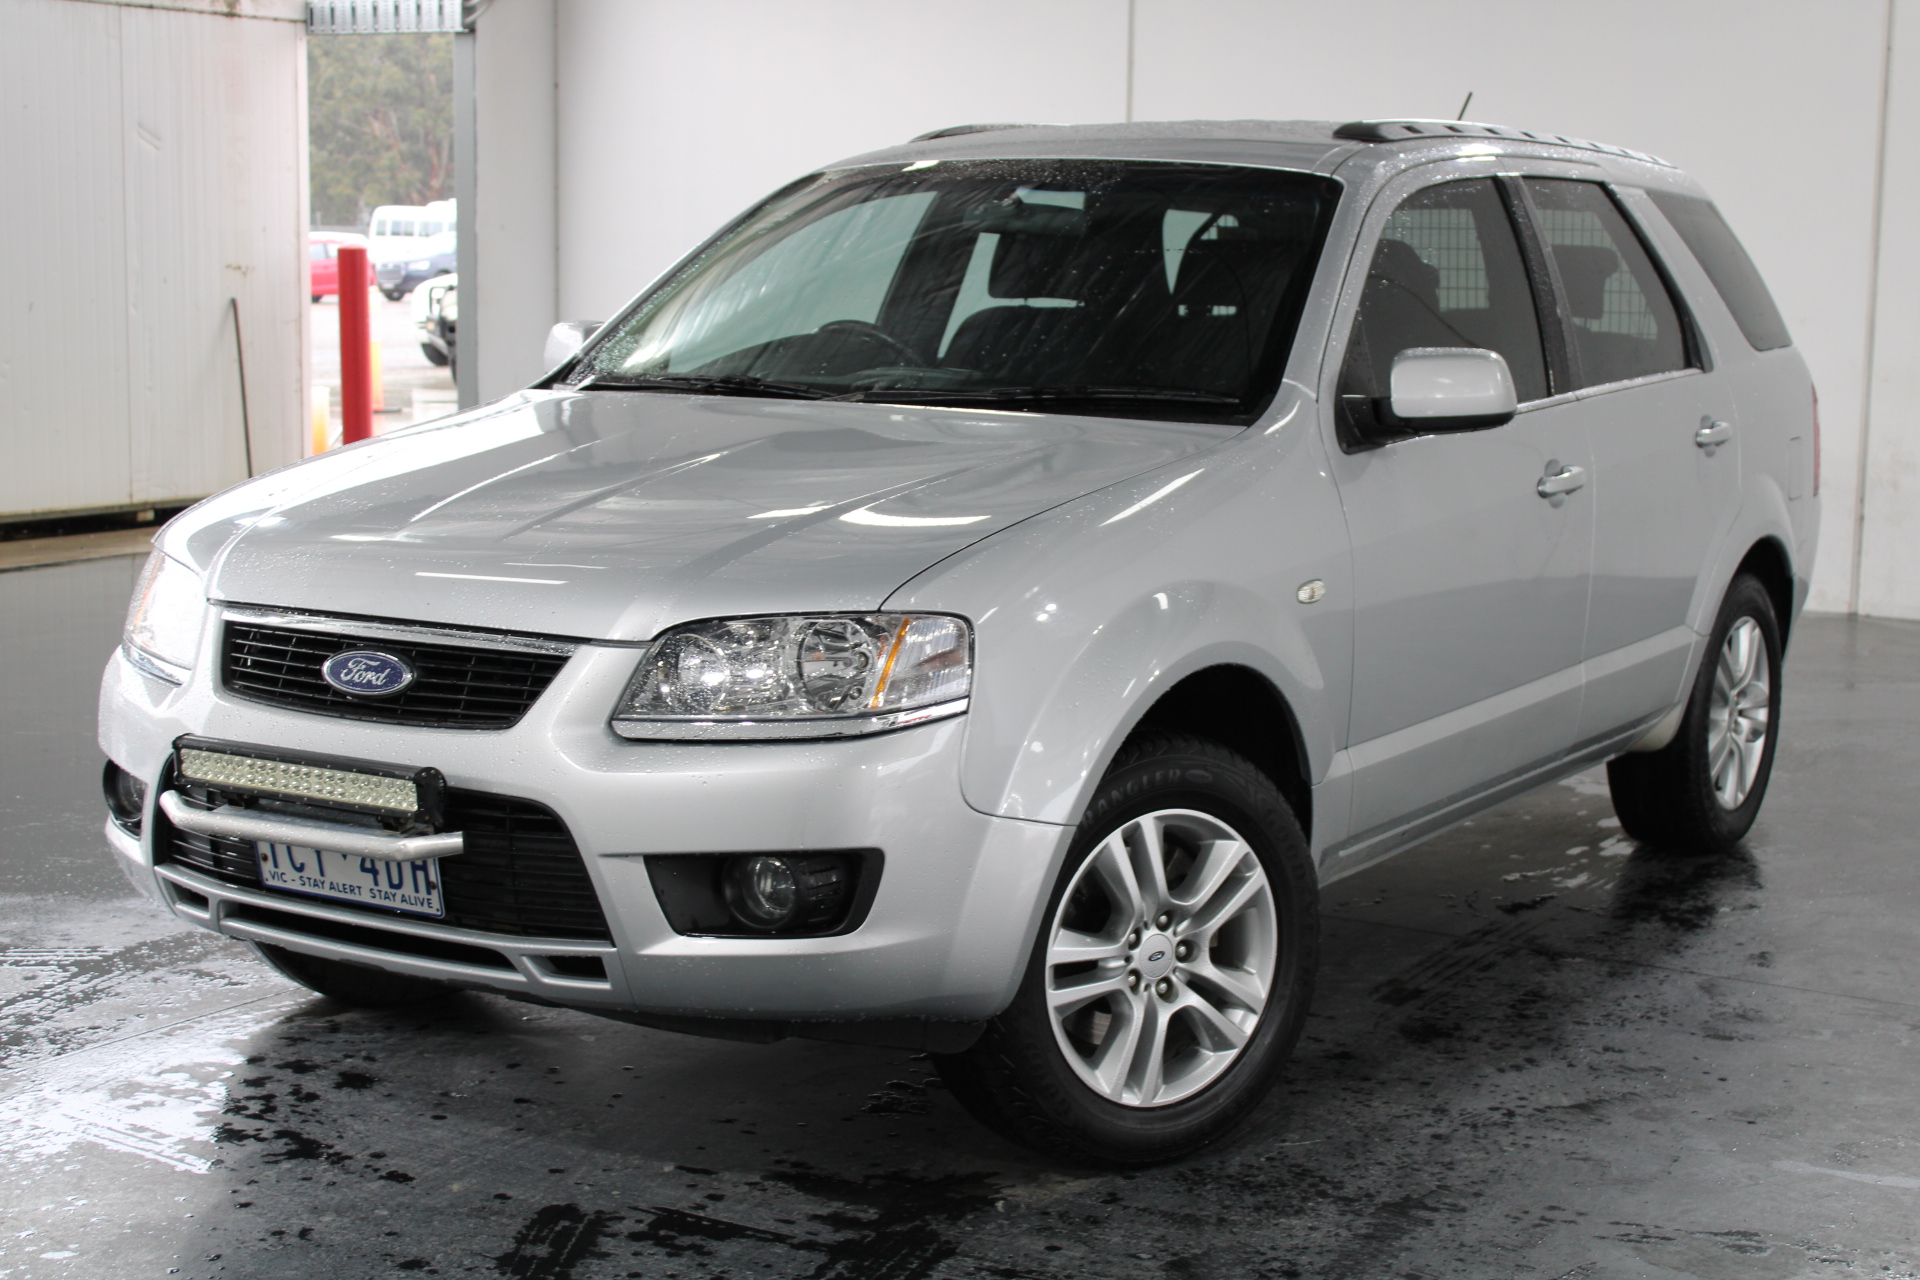 2010 Ford Territory TS SY II Automatic Wagon